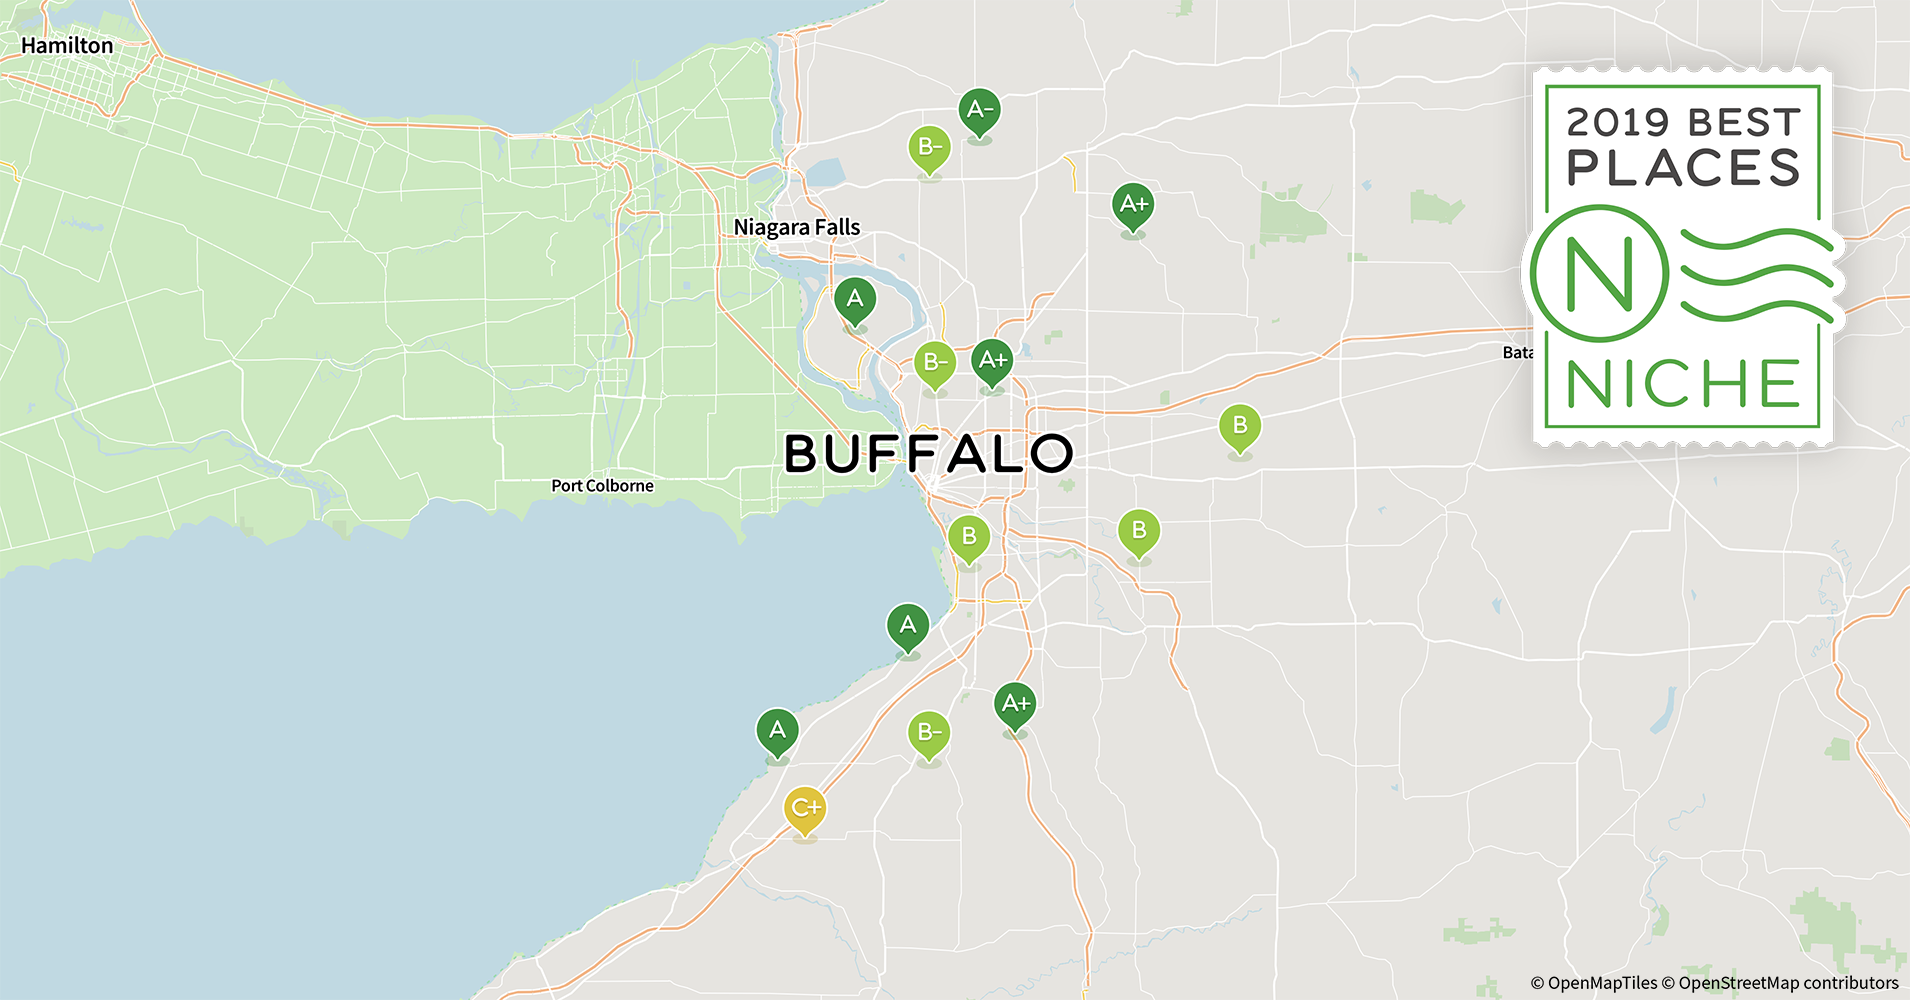 2019 Best Buffalo Area Suburbs to Live - Niche Map Buffalo on wind point map, the atlanta map, niagara falls map, st francis map, watertown map, rochester map, utica map, yellowstone river map, cincinnati map, toledo map, boston map, new york map, cooperstown ny on a map, fair grove map, indianapolis map, grand island map, college at brockport map, jacksonville map, blooming grove map, town of wheatfield map,